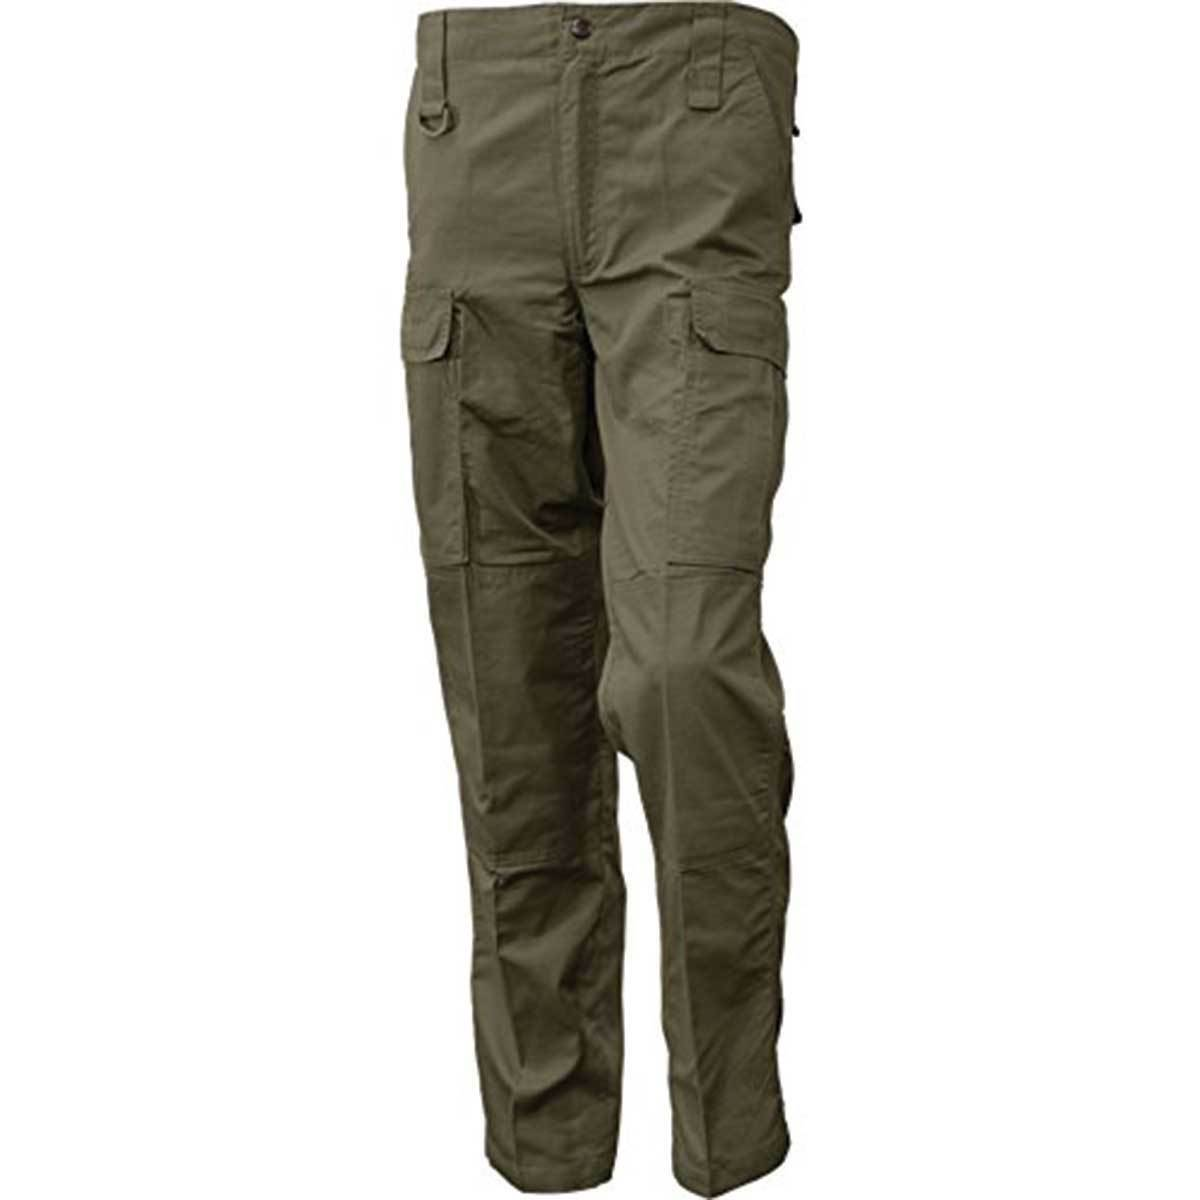 Tippmann Tactical TDU Pants - Olive - Large